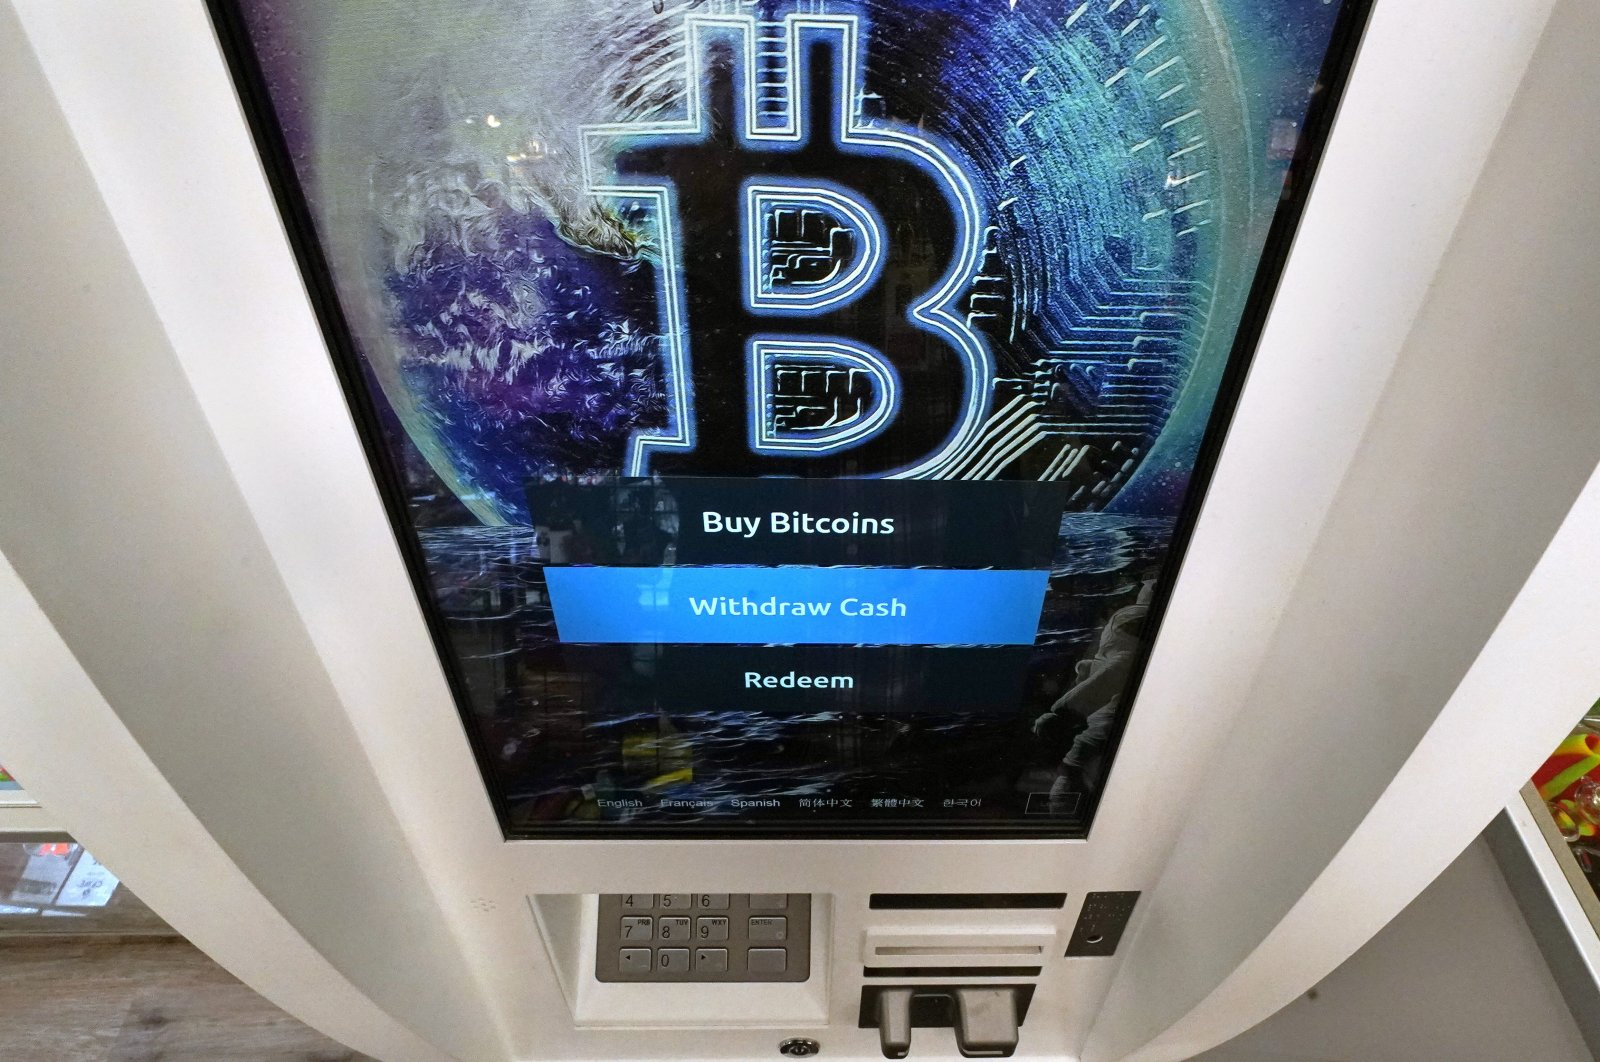 The Bitcoin logo appears on the display screen of a cryptocurrency ATM at the Smoker's Choice store in Salem, New Hampshire, U.S., Feb. 9, 2021. (AP Photo)